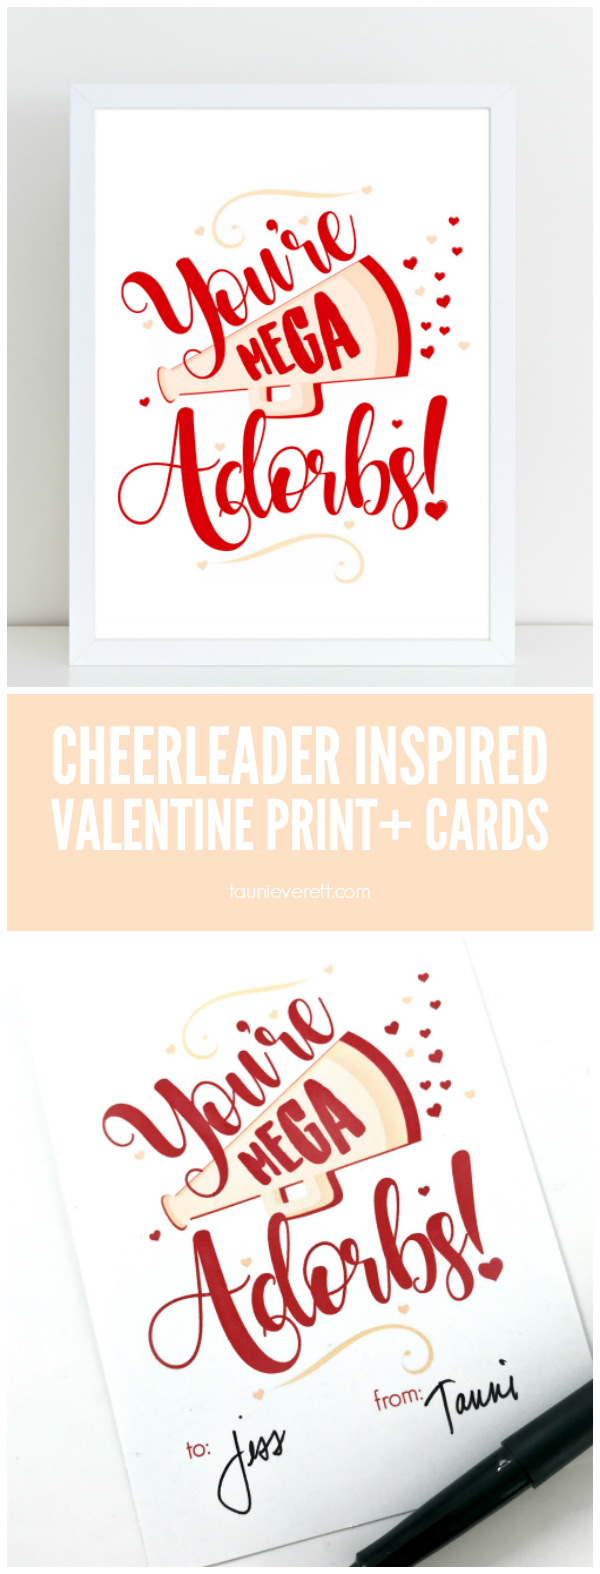 """You're Mega Adorbs!"" Cheerleader Inspired Valentine Art print and cards by Tauni Everett"